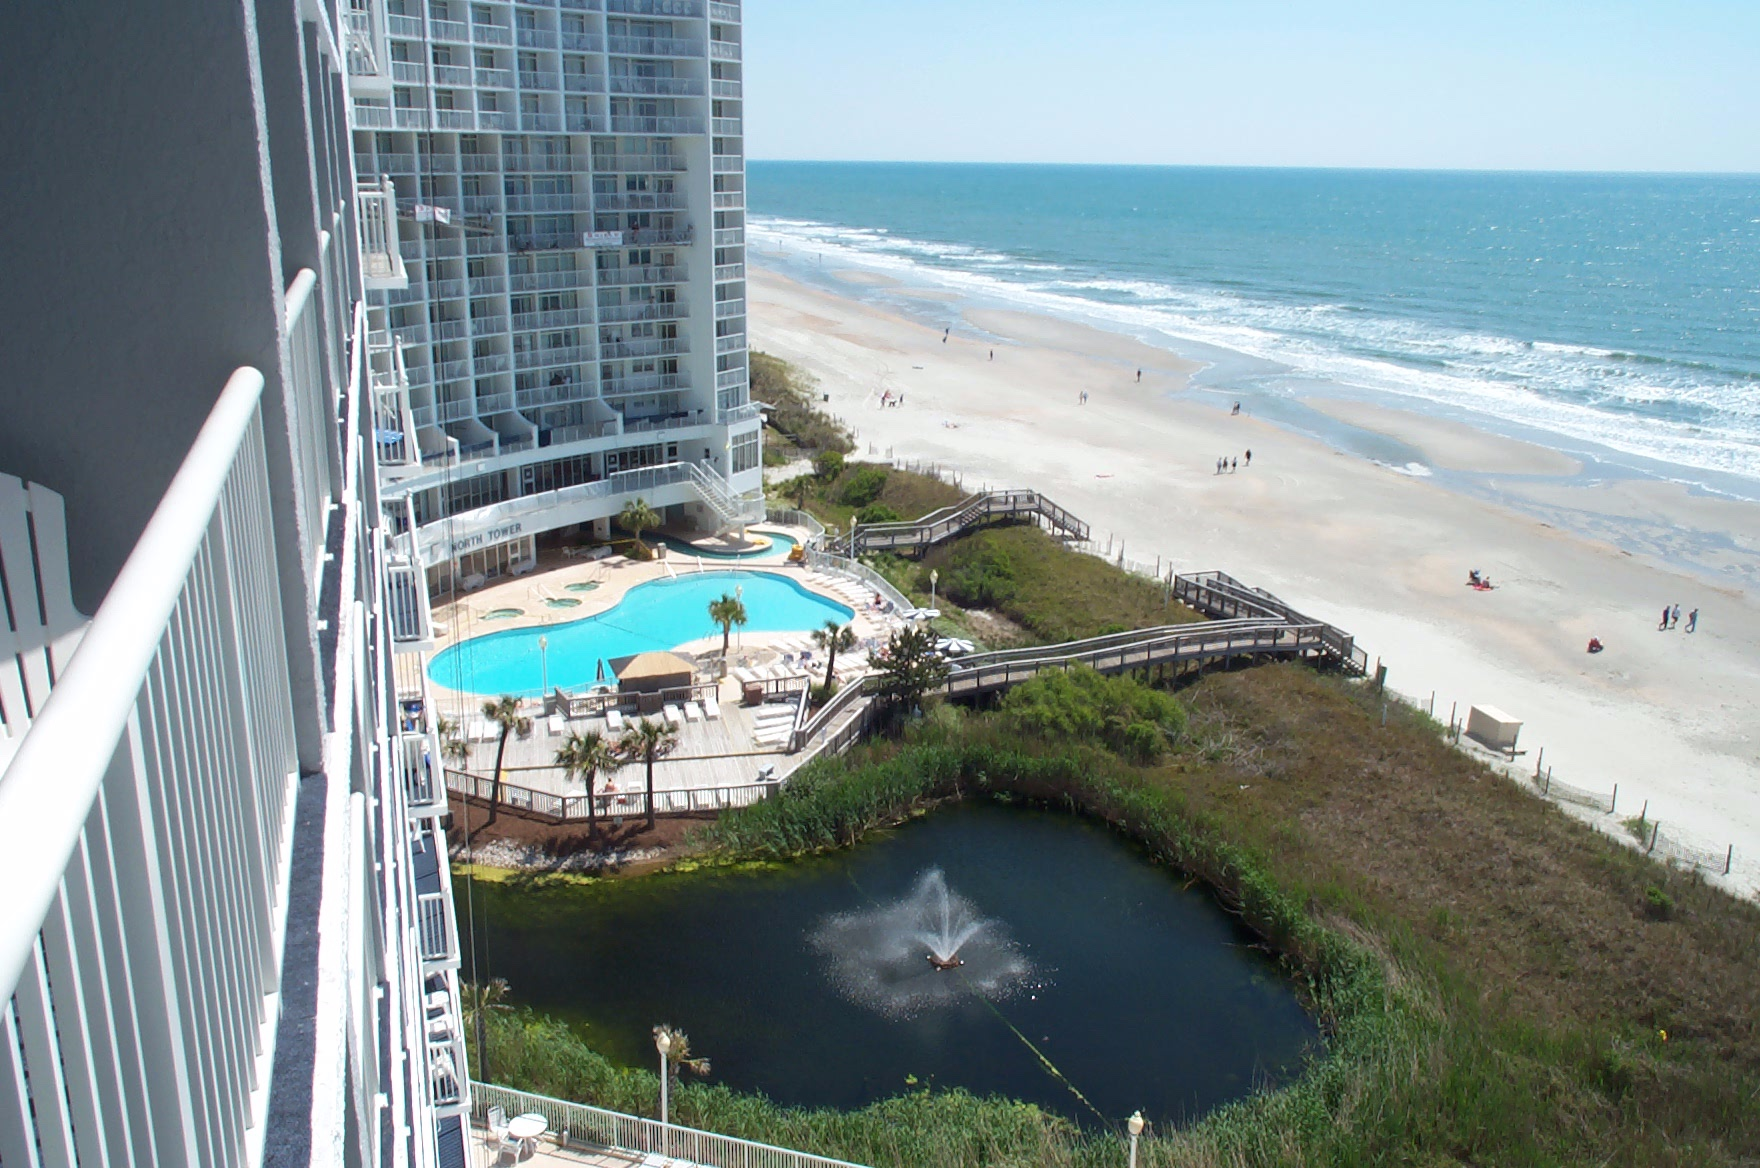 Apartment Seawatch Plantation 1 Bedroom 1 Bathroom photo 20365200